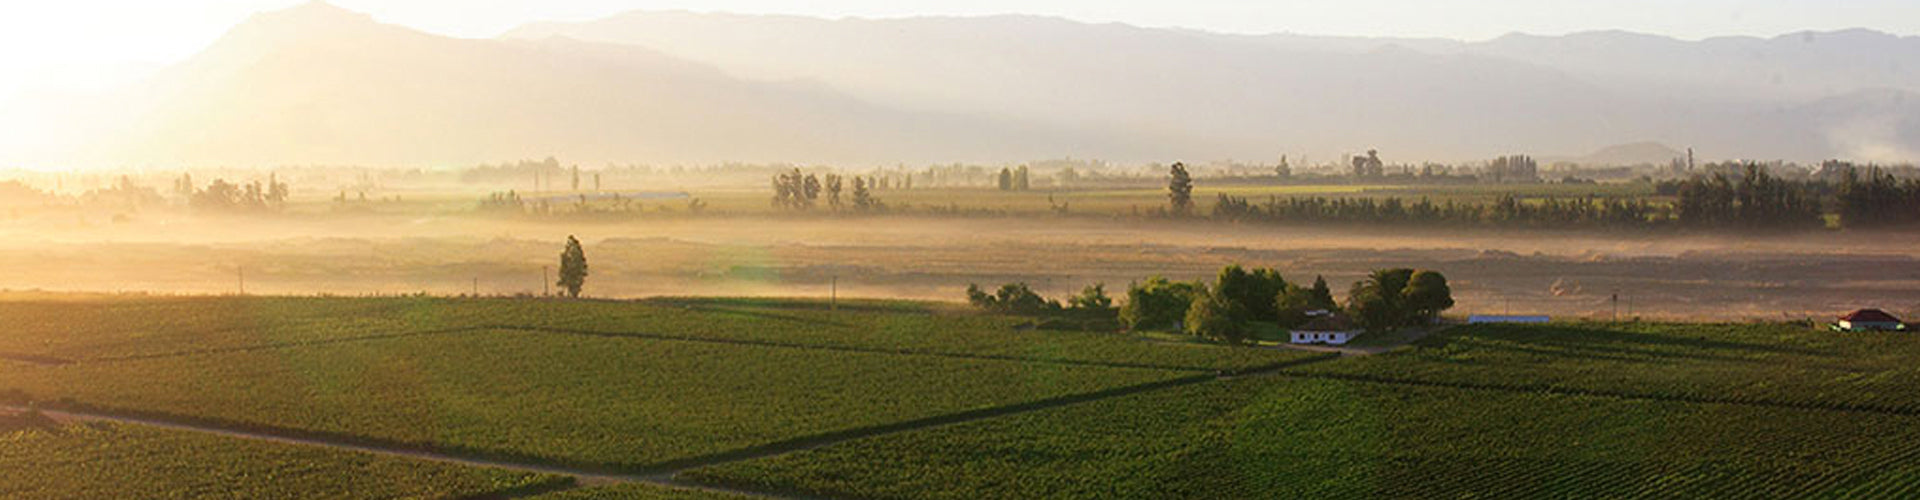 Morandé Vineyards in Chile's Casablanca Valley